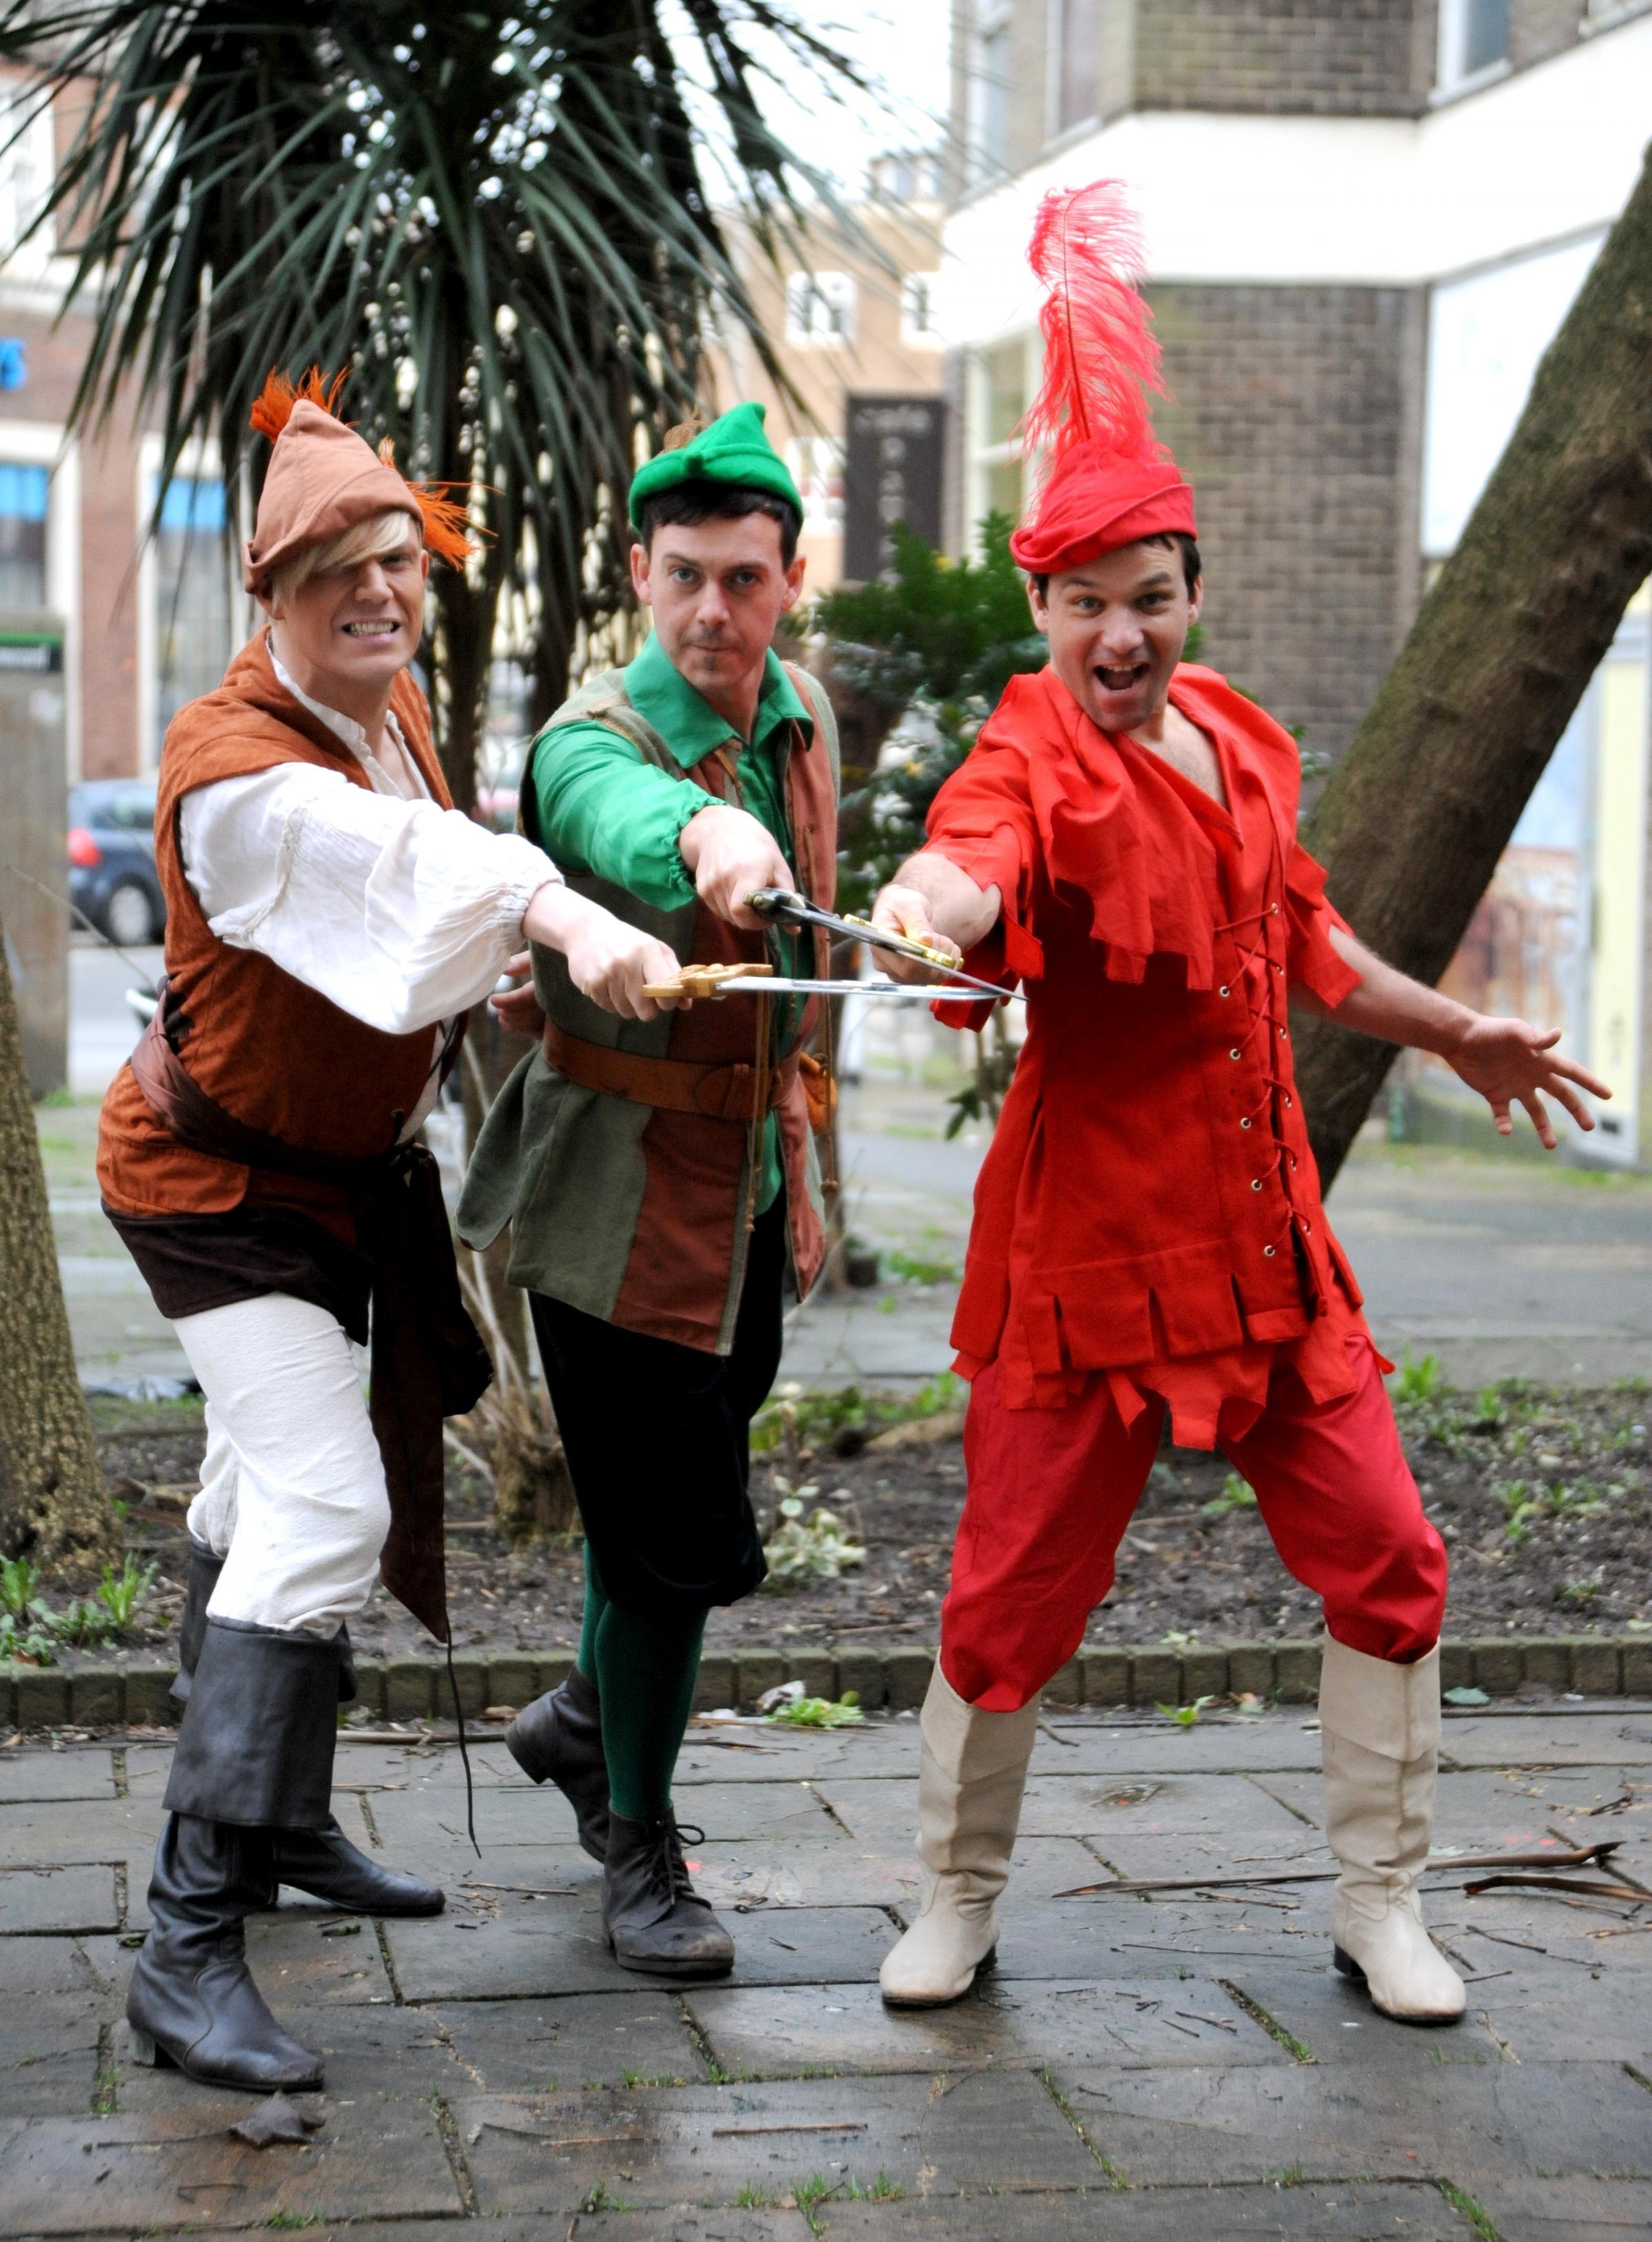 Roll up for The Alternative Panto in Brighton